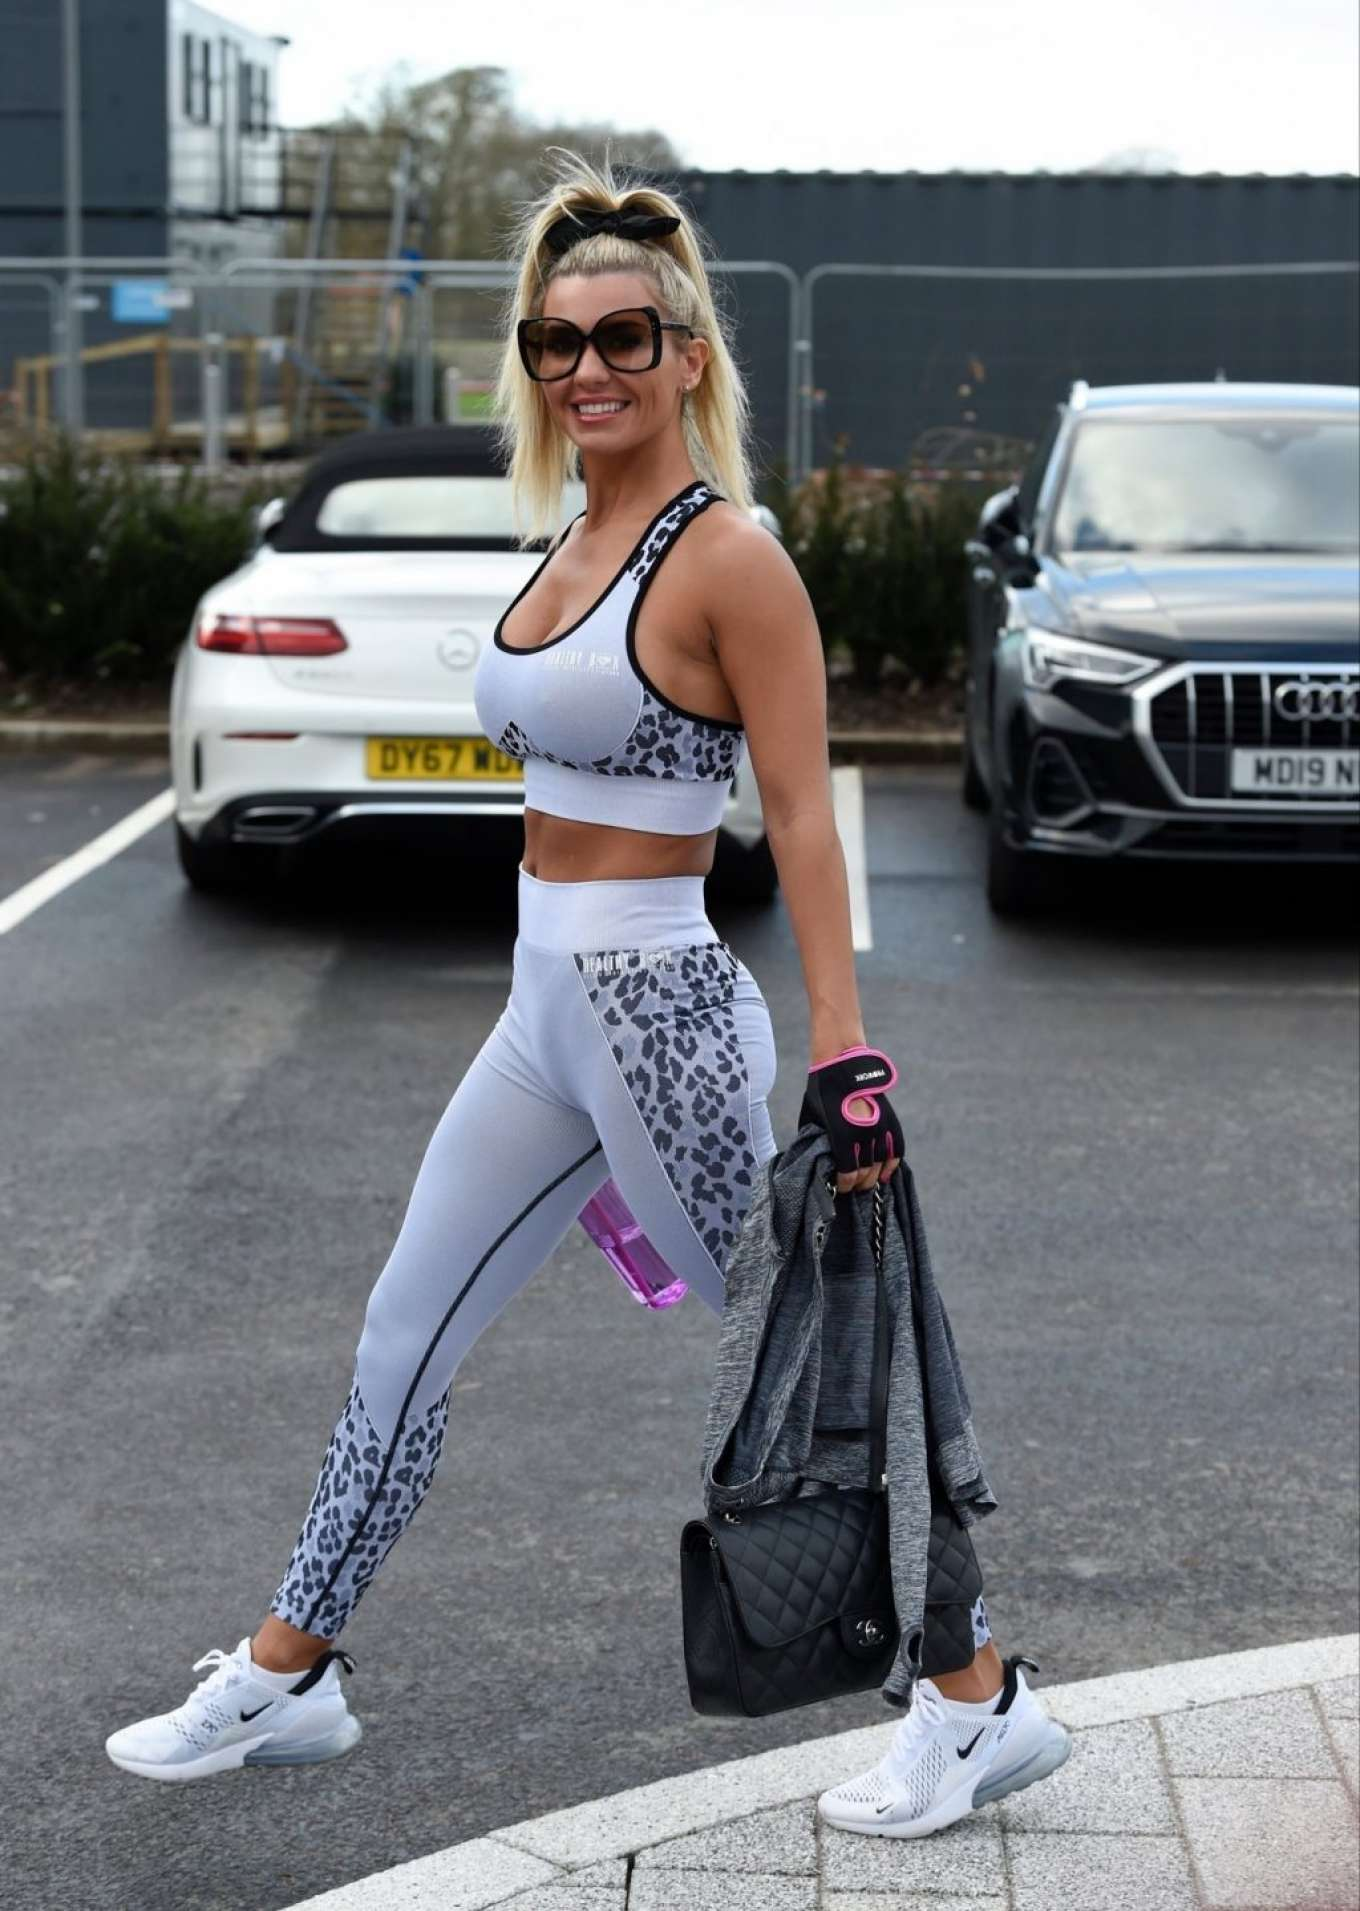 Christine McGuinness 2019 : Christine McGuinness in Gym Outfit – Leaving the gym in Cheshire-34